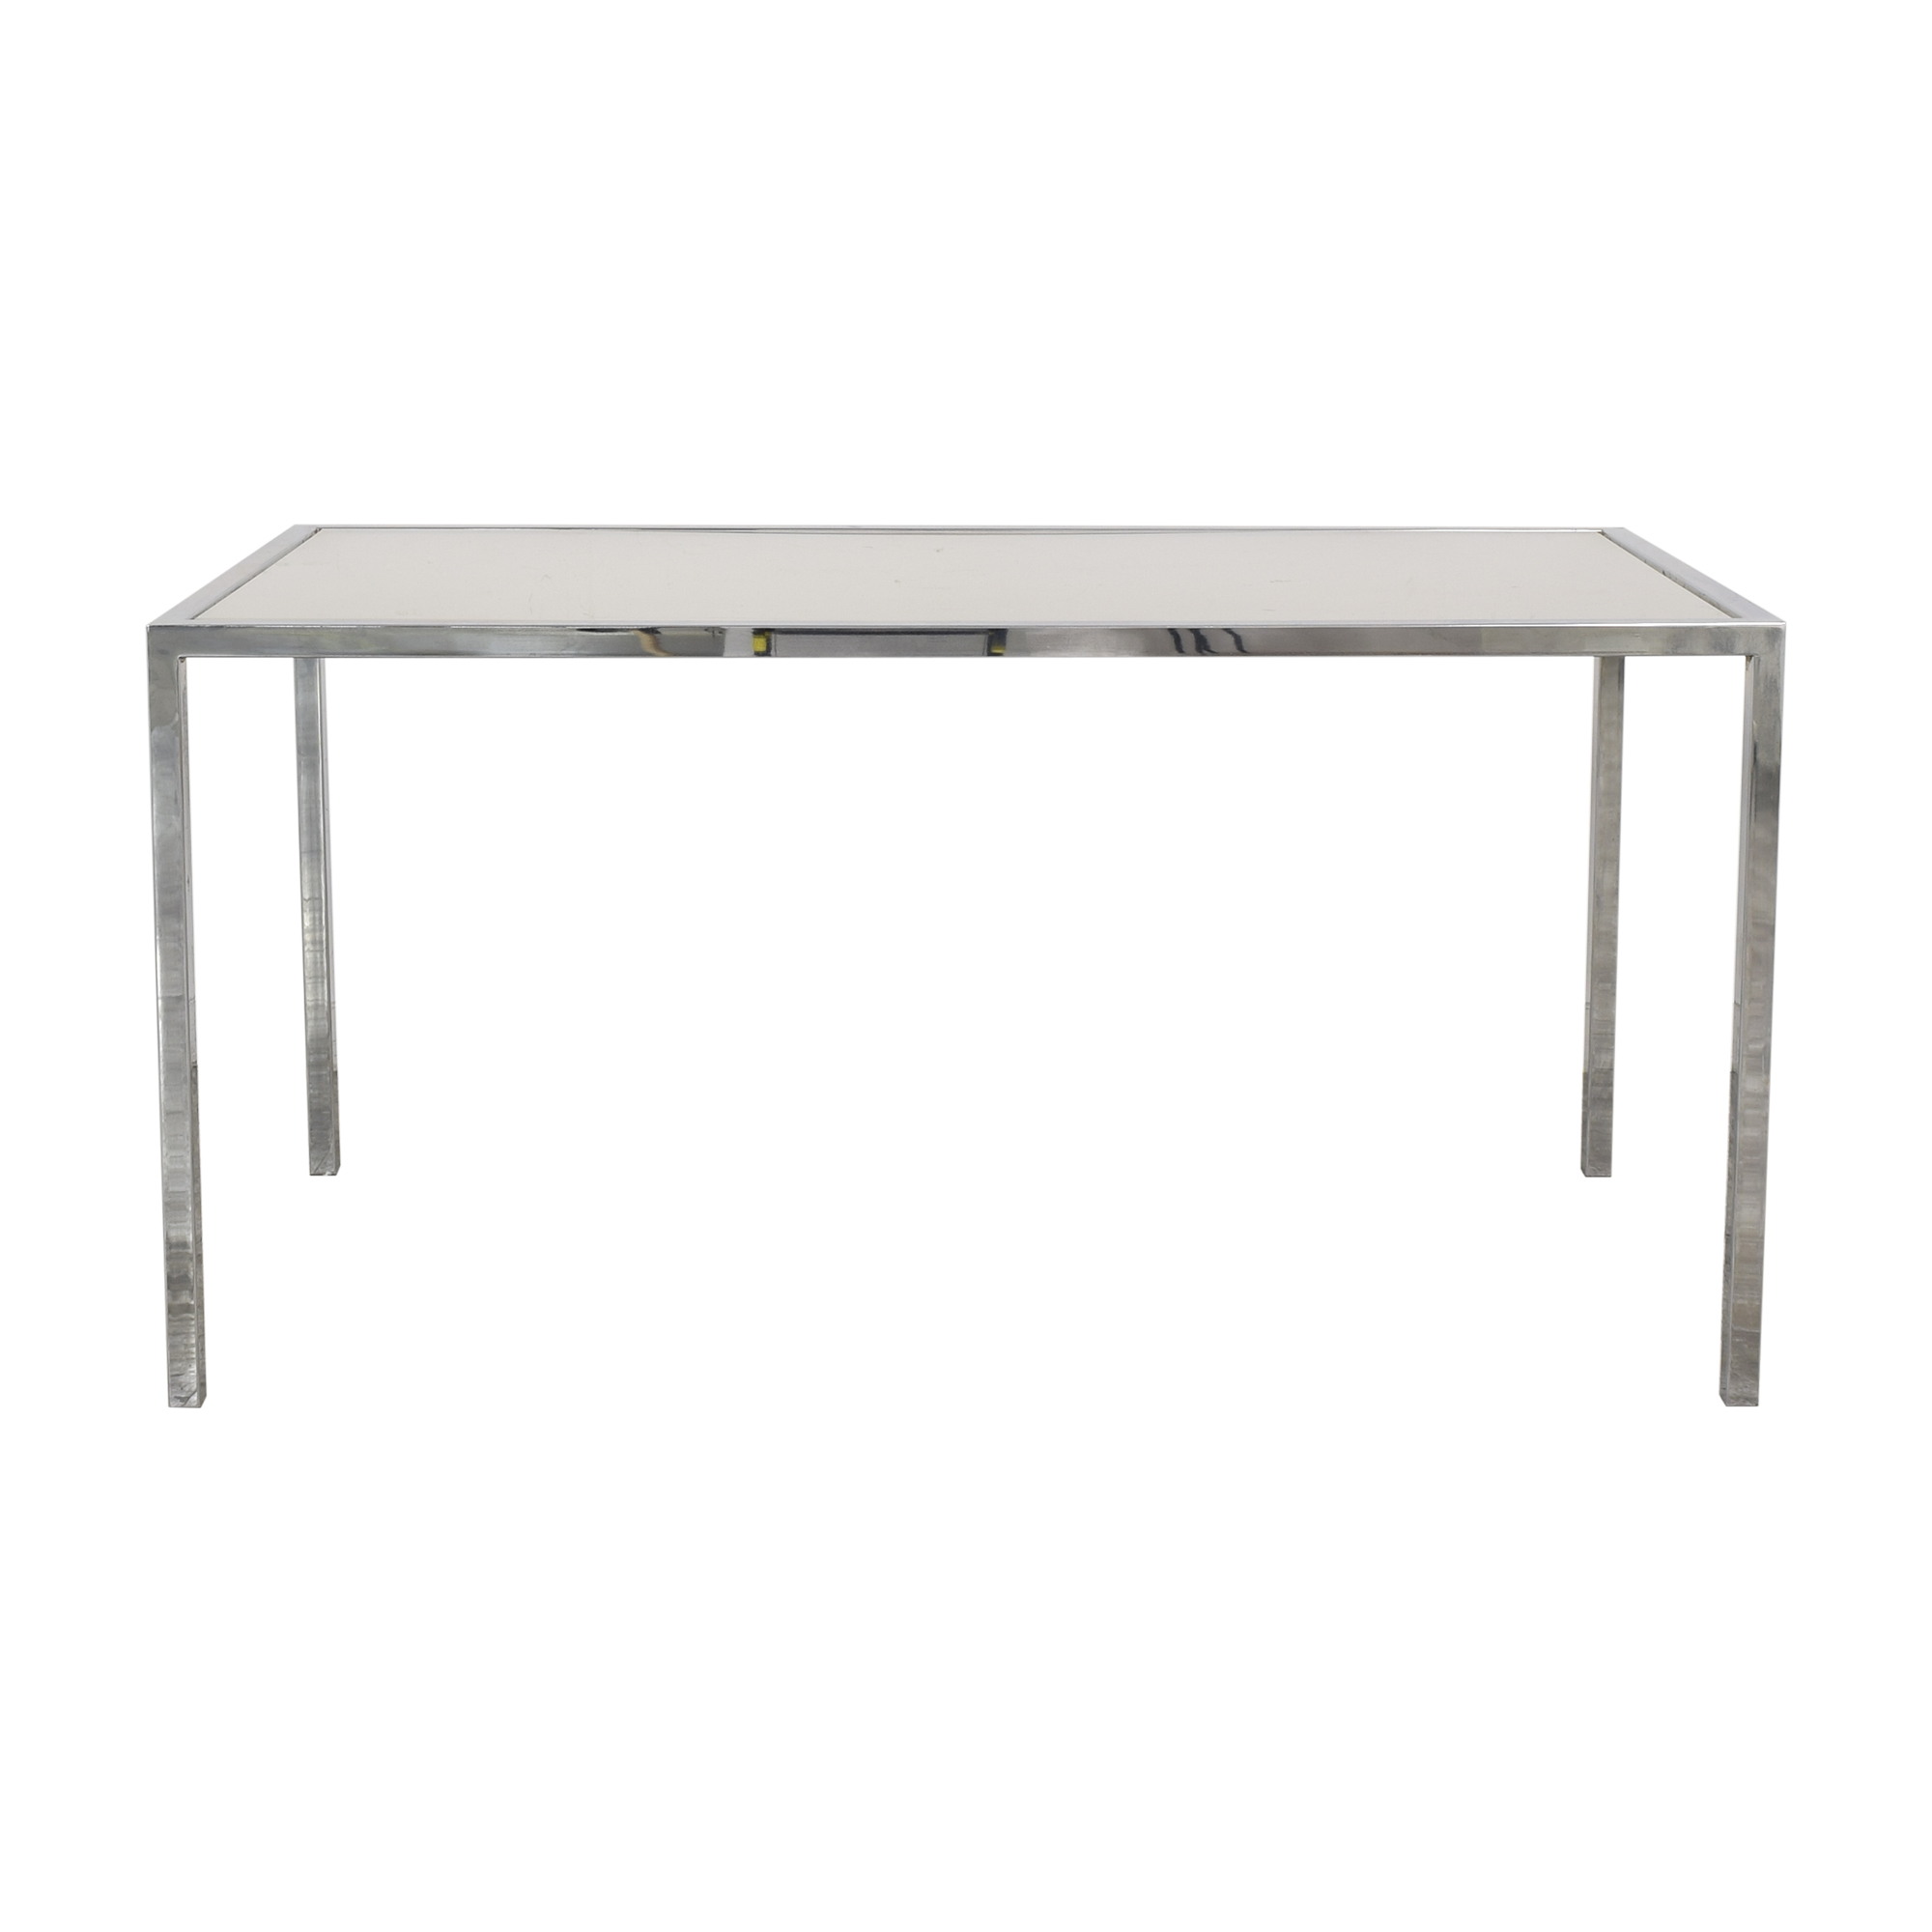 Chrome Base Dining Table with Sunken Glass Top sale